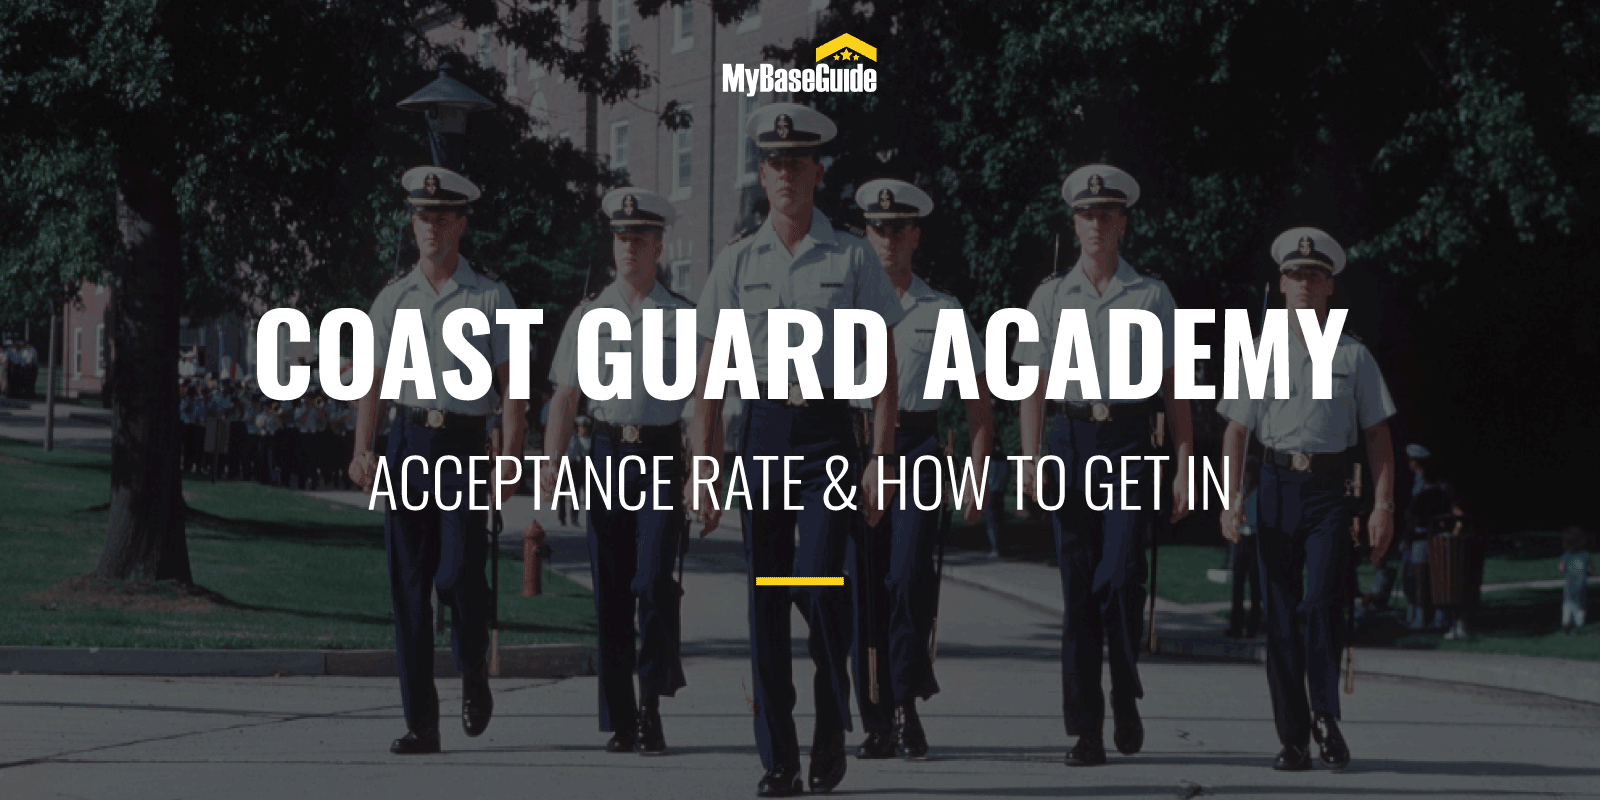 Coast Guard Academy Acceptance Rate & How to Get in